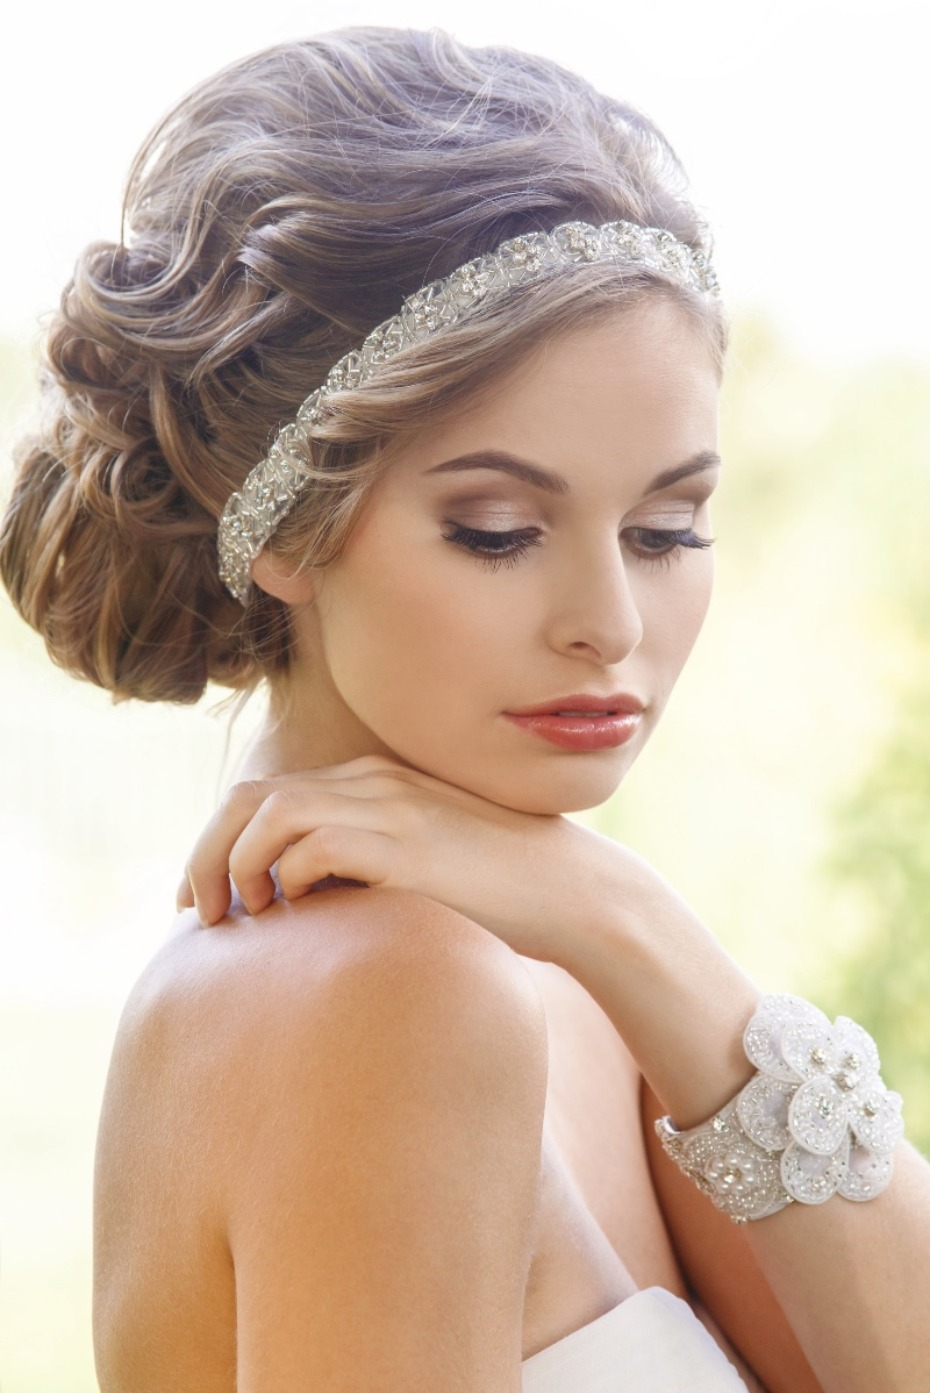 10 Wedding Headpieces We're Currently Crushing On